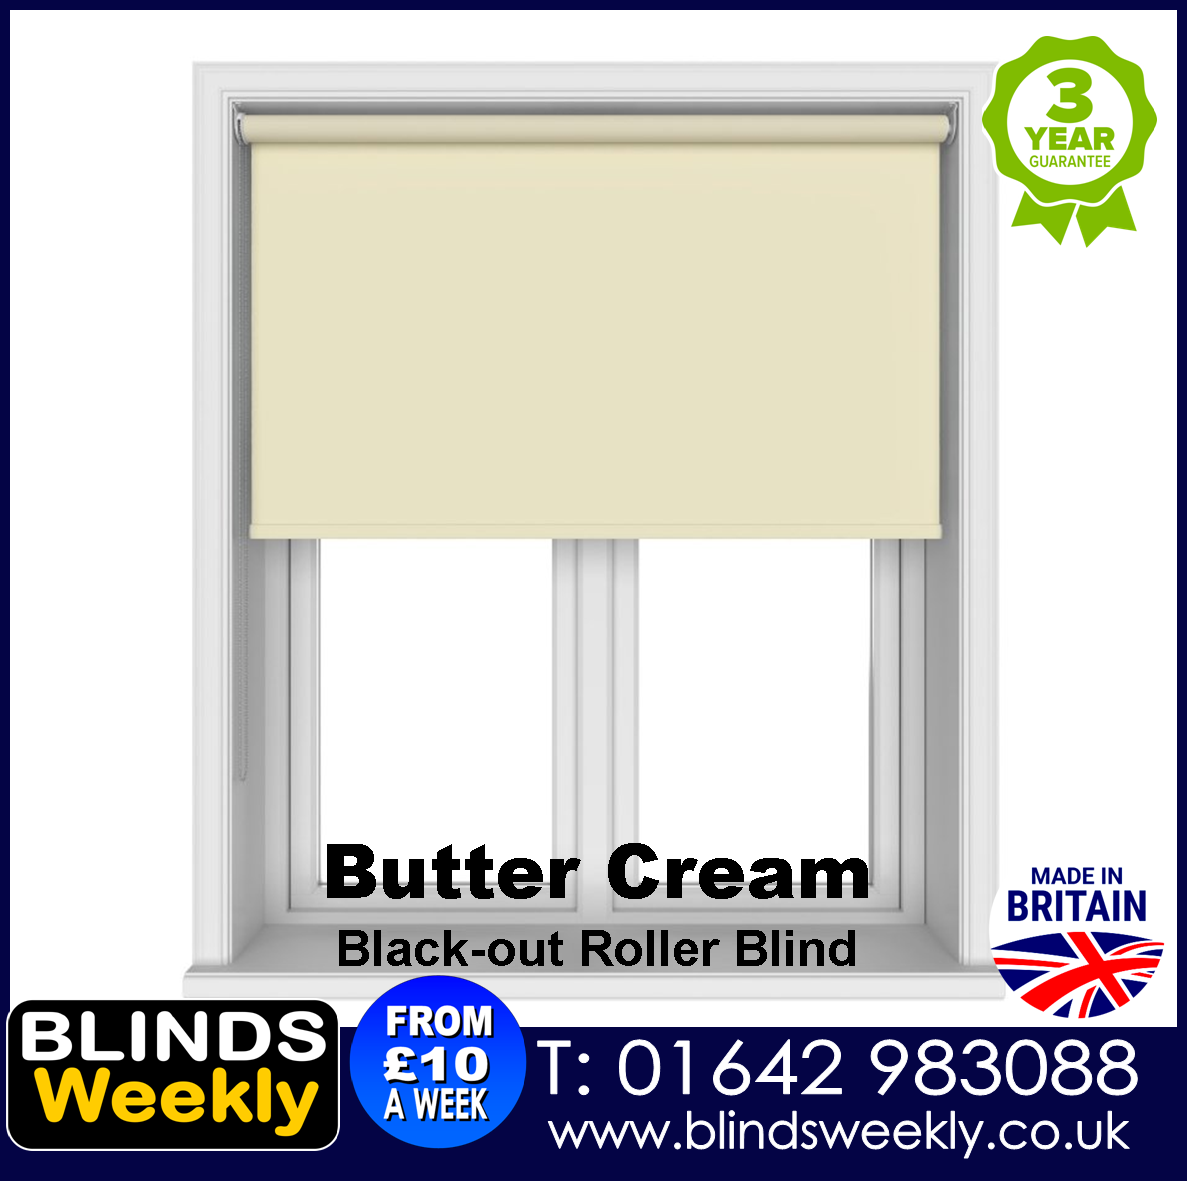 Blinds Weekly Blackout Roller Blind - BUTTER CREAM